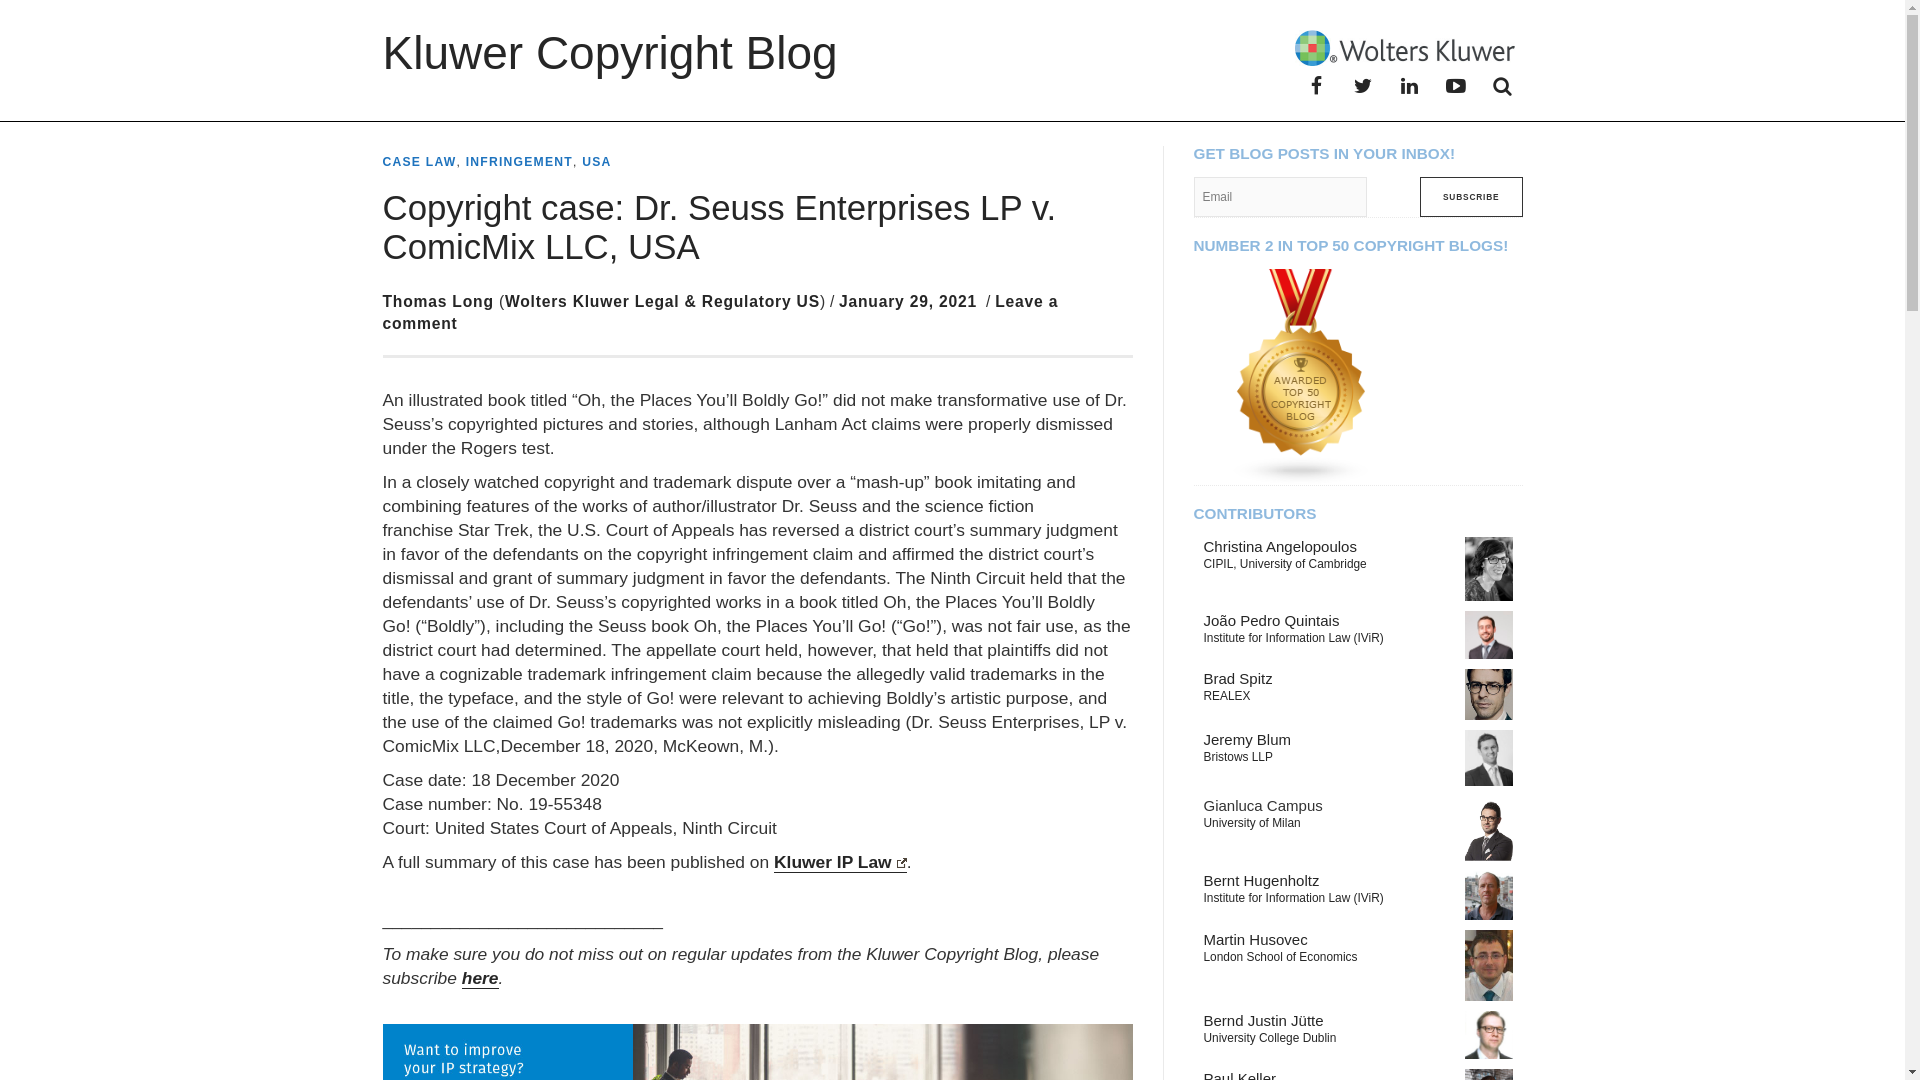 Fairness Rocks News Copyright case: Dr. Seuss Enterprises LP v. ComicMix LLC, USA